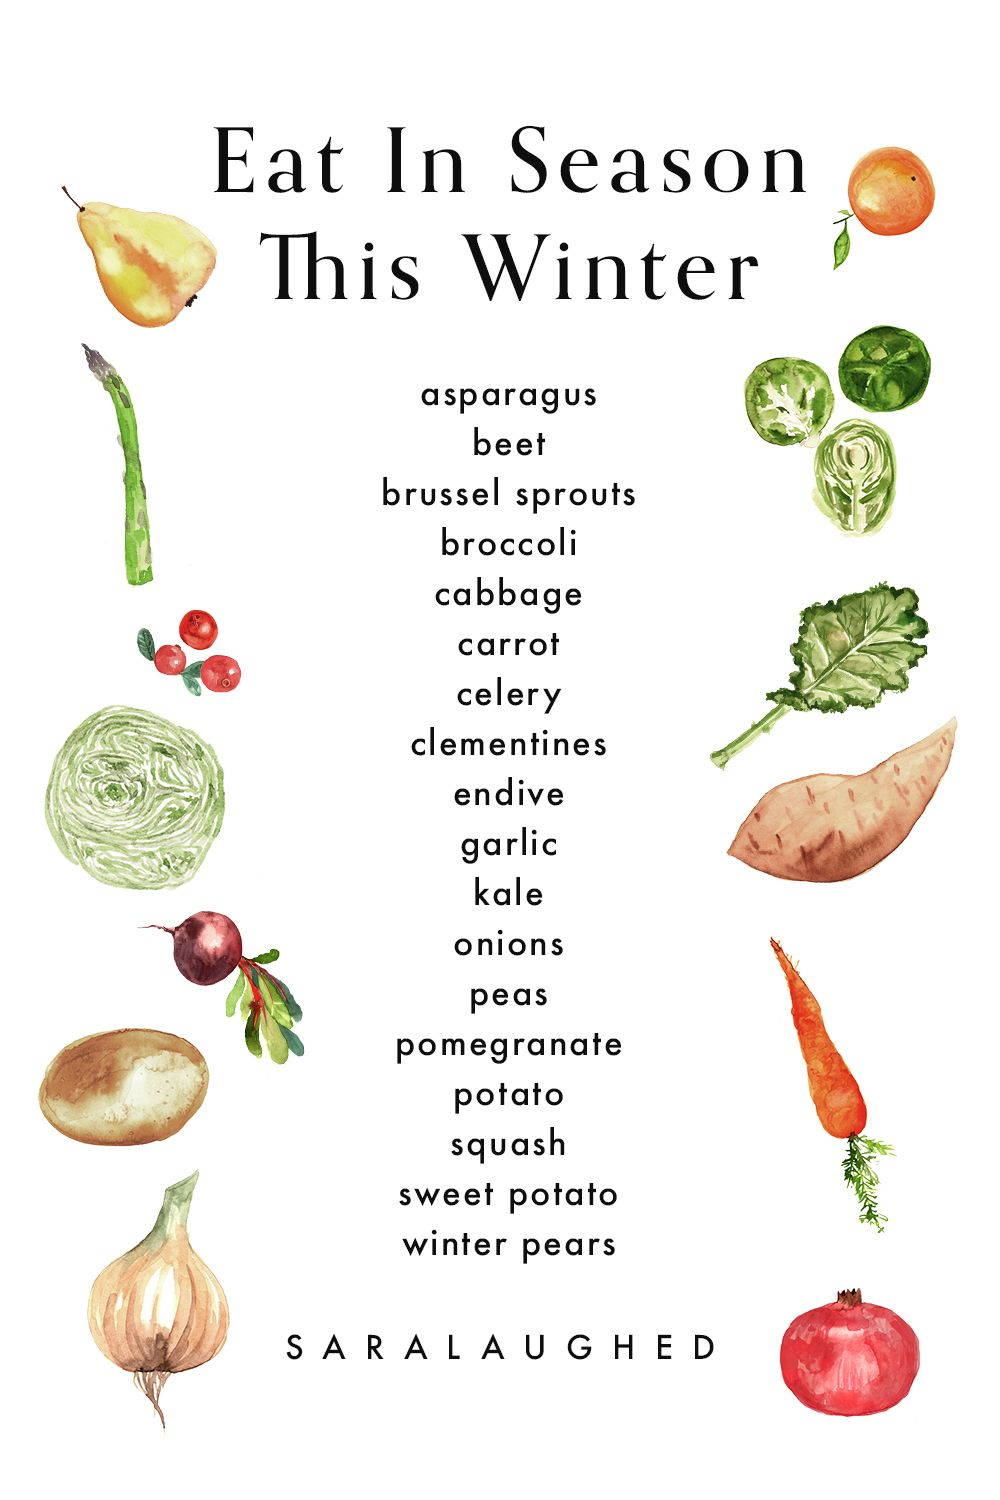 20 Winter Self Care Ideas For You Not Your Instagram Followers Season Fruits And Vegetables Seasonal Meal Planning Seasonal Food